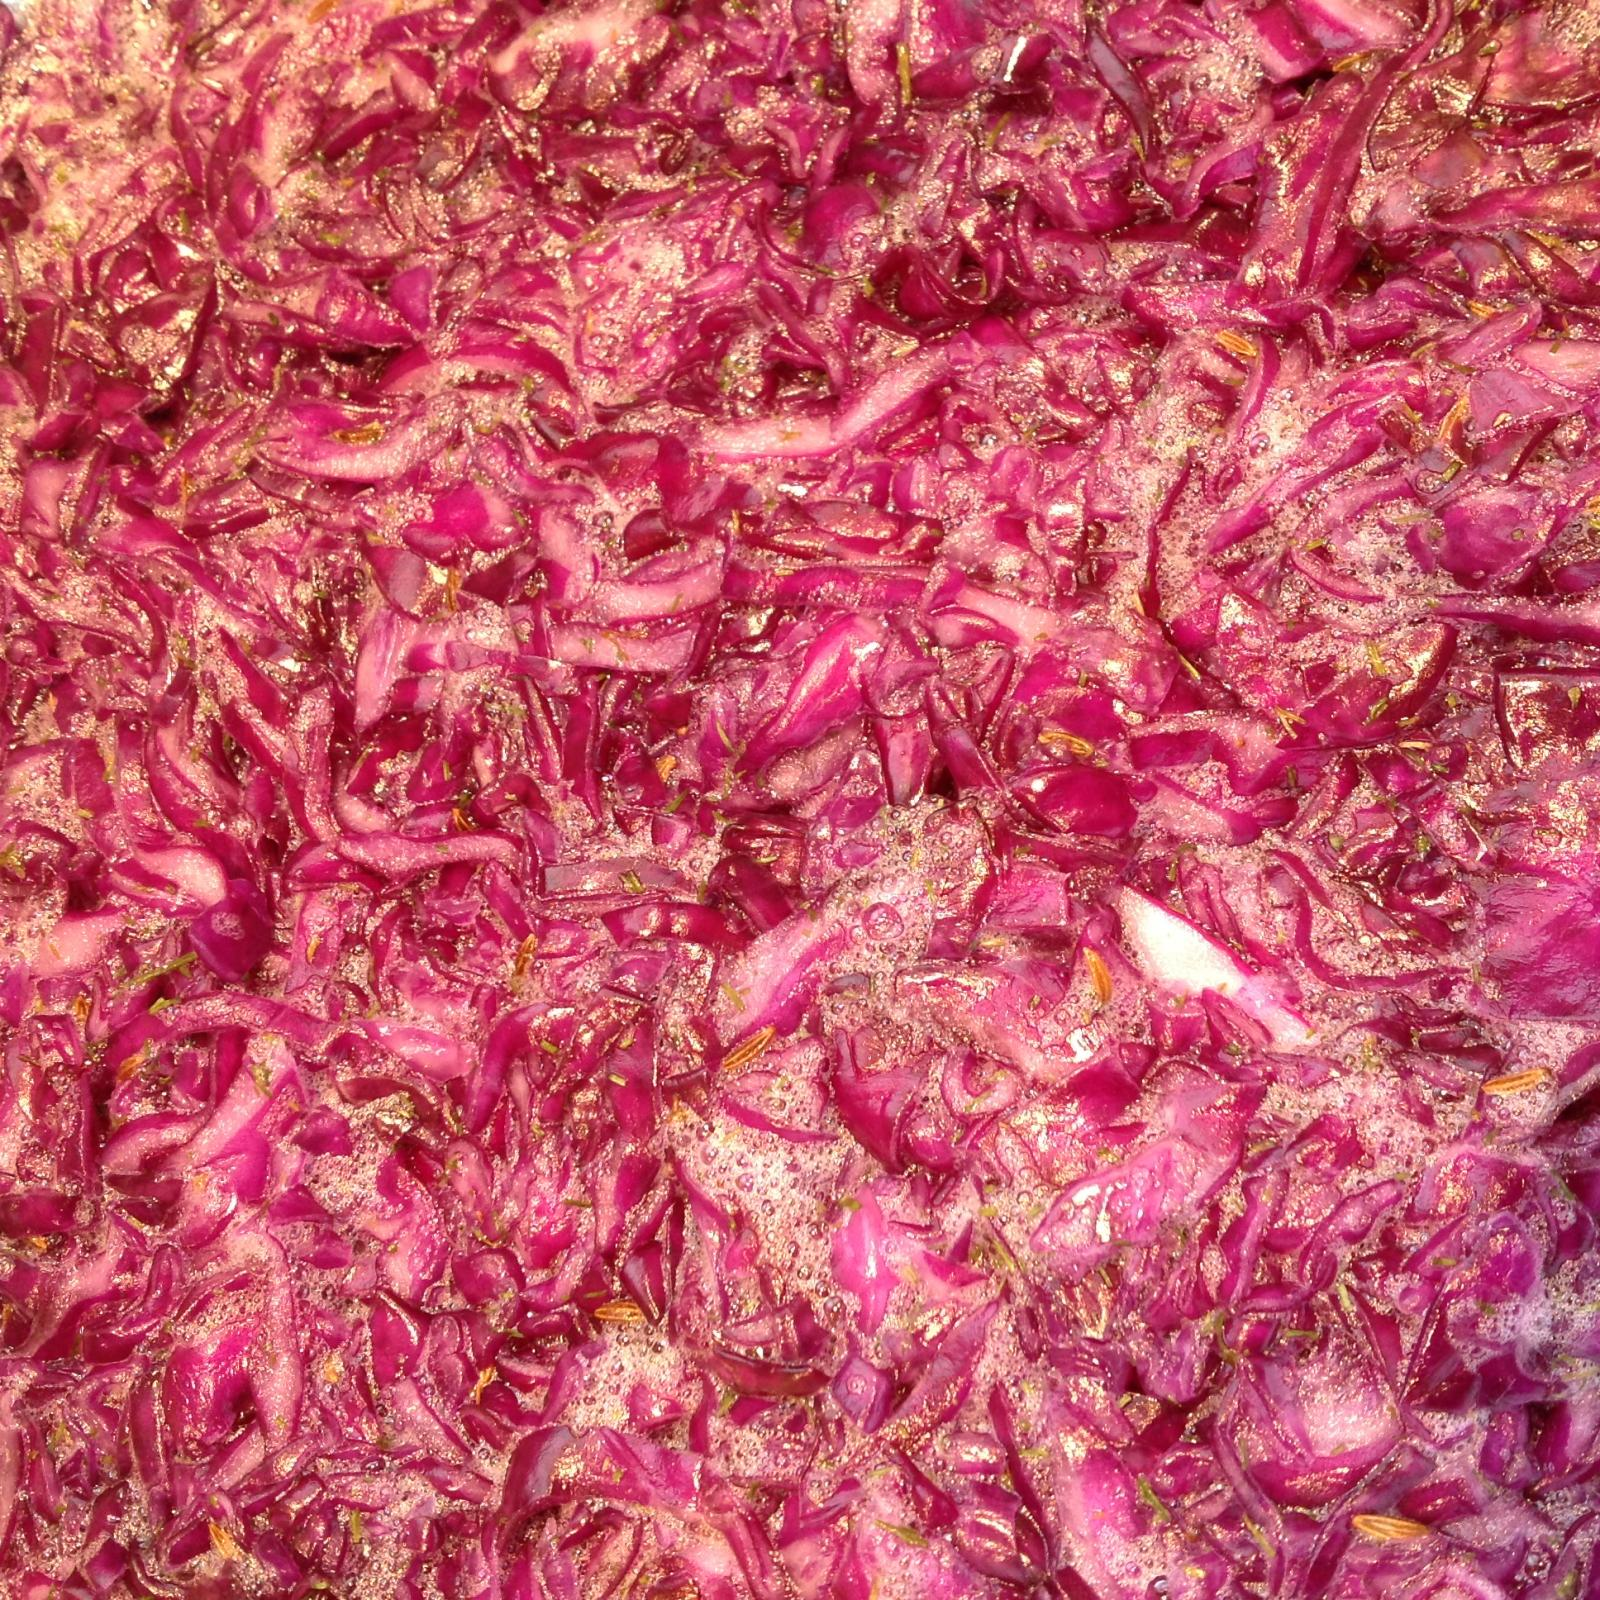 Bubbling red kraut